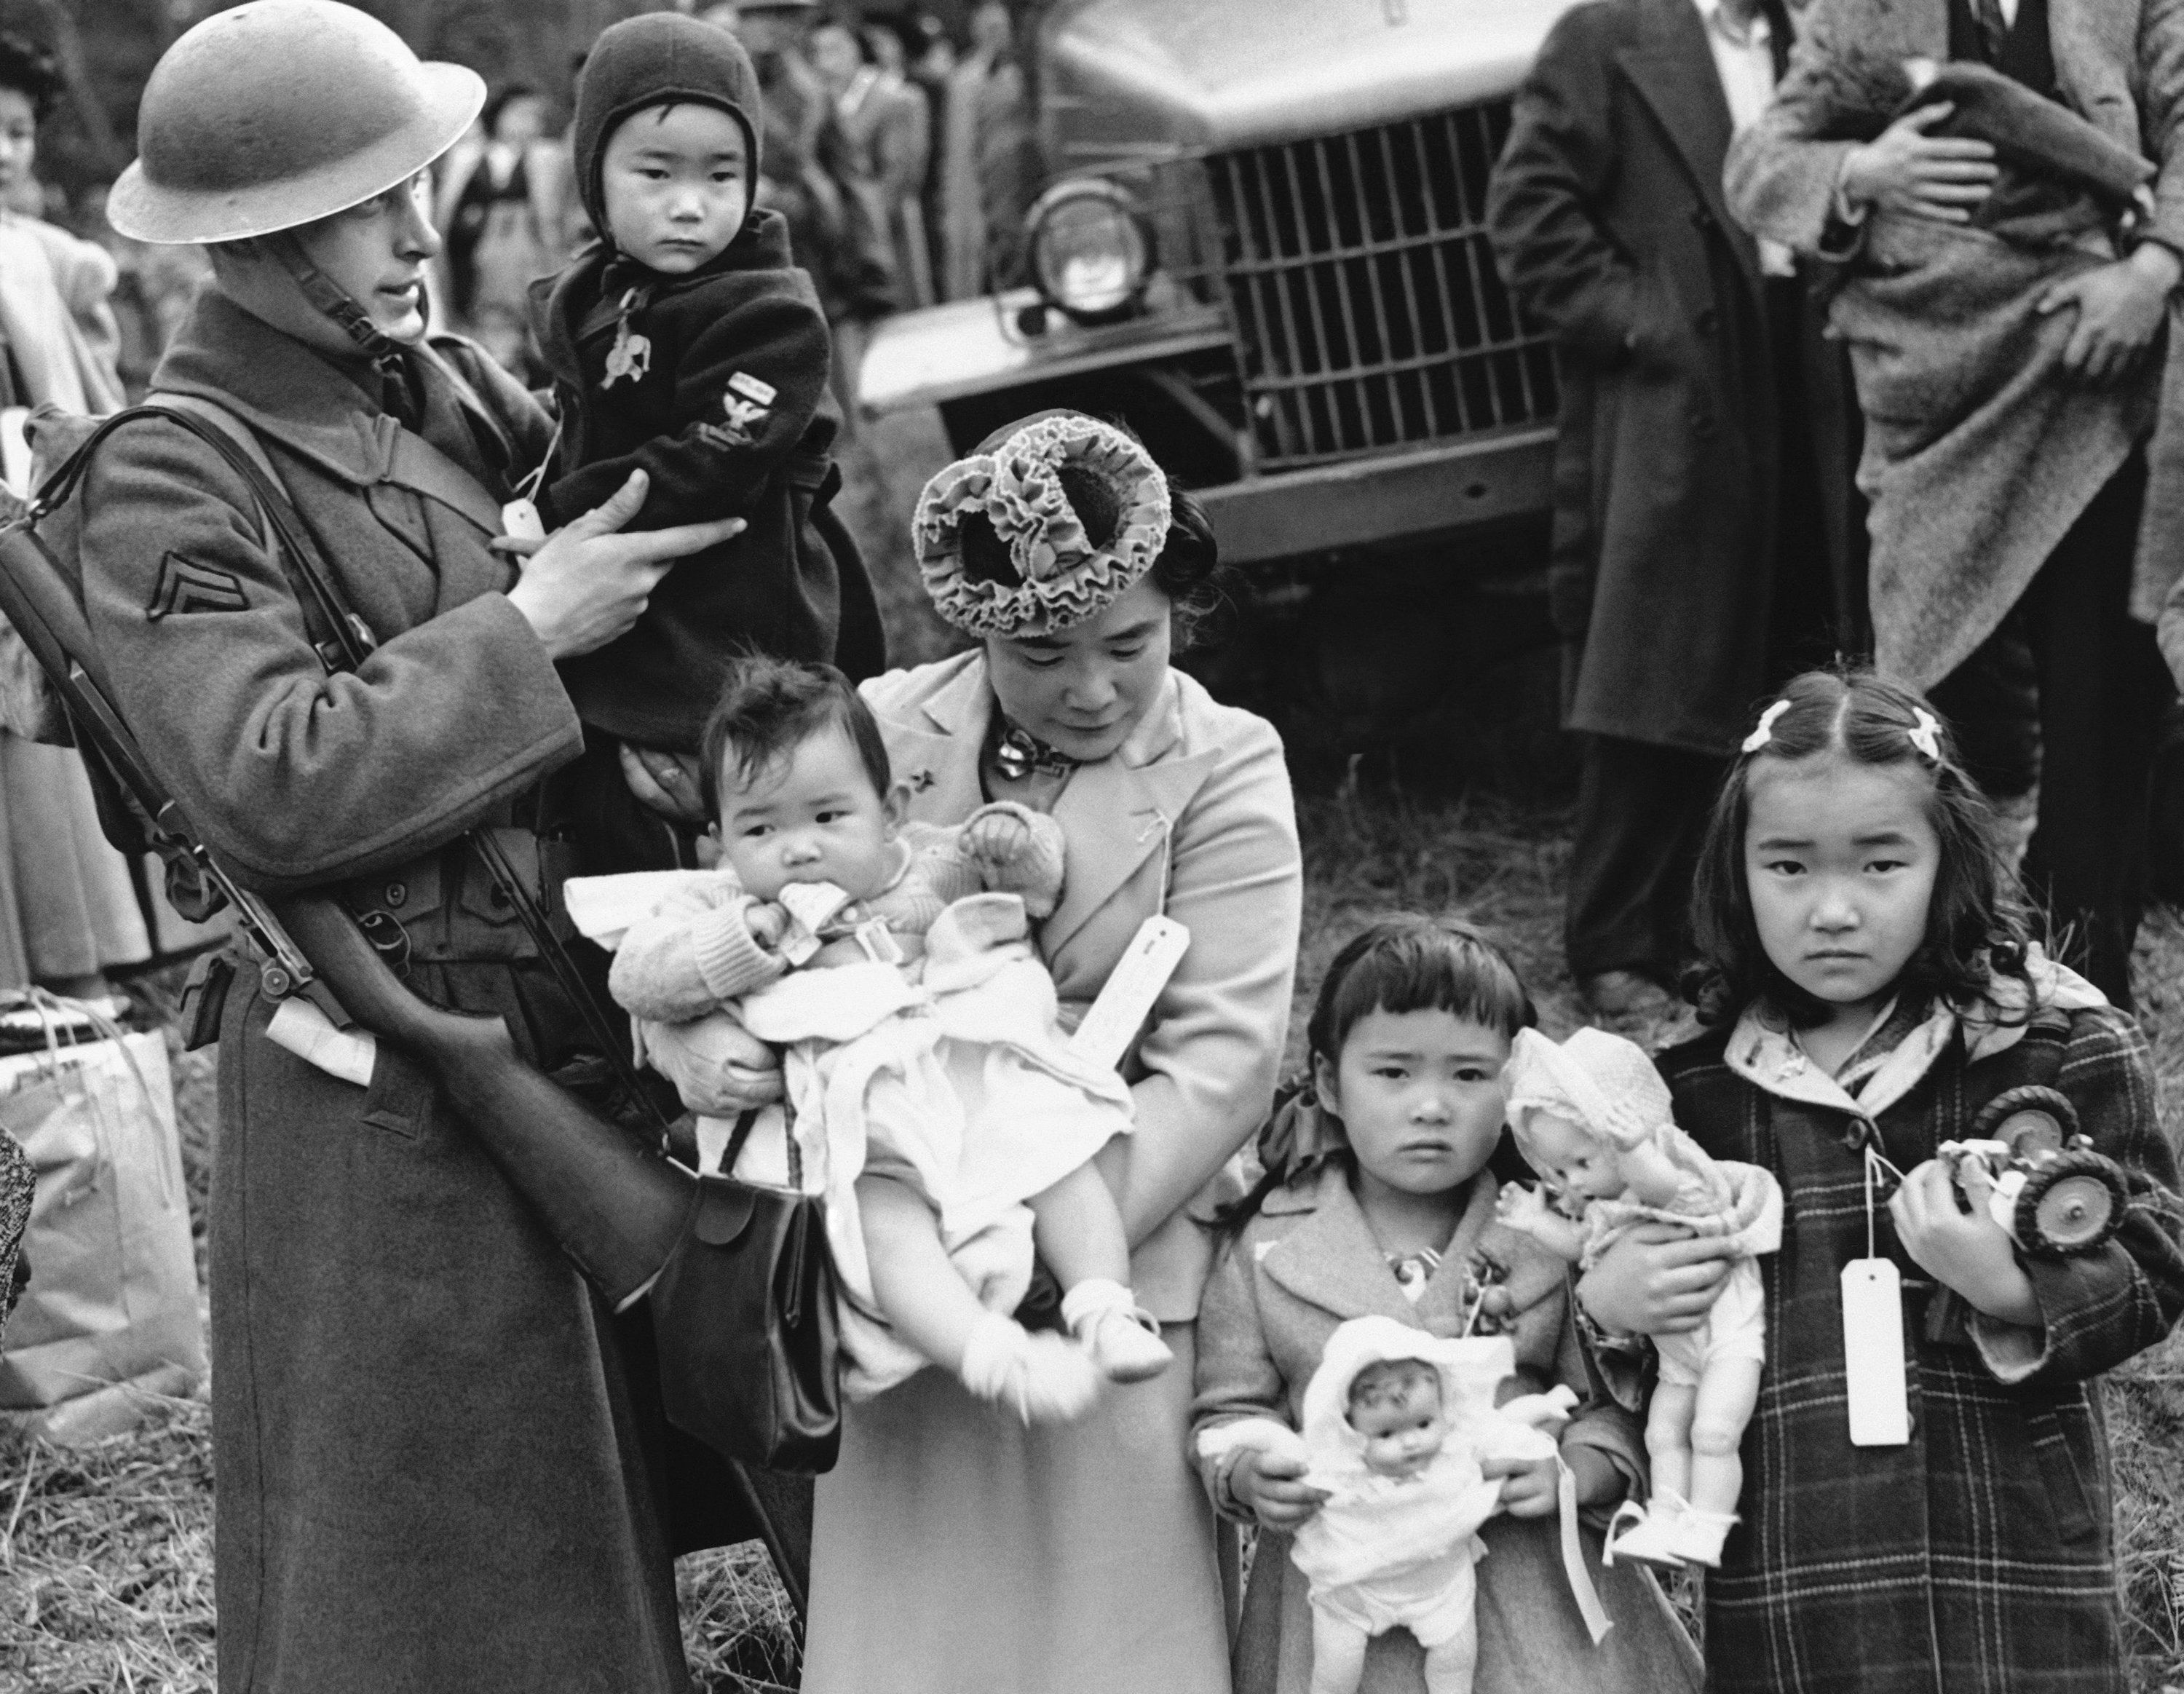 In this March 30, 1942 file photo, Cpl. George Bushy holds the youngest child of Shigeho Kitamoto, center, as her family and